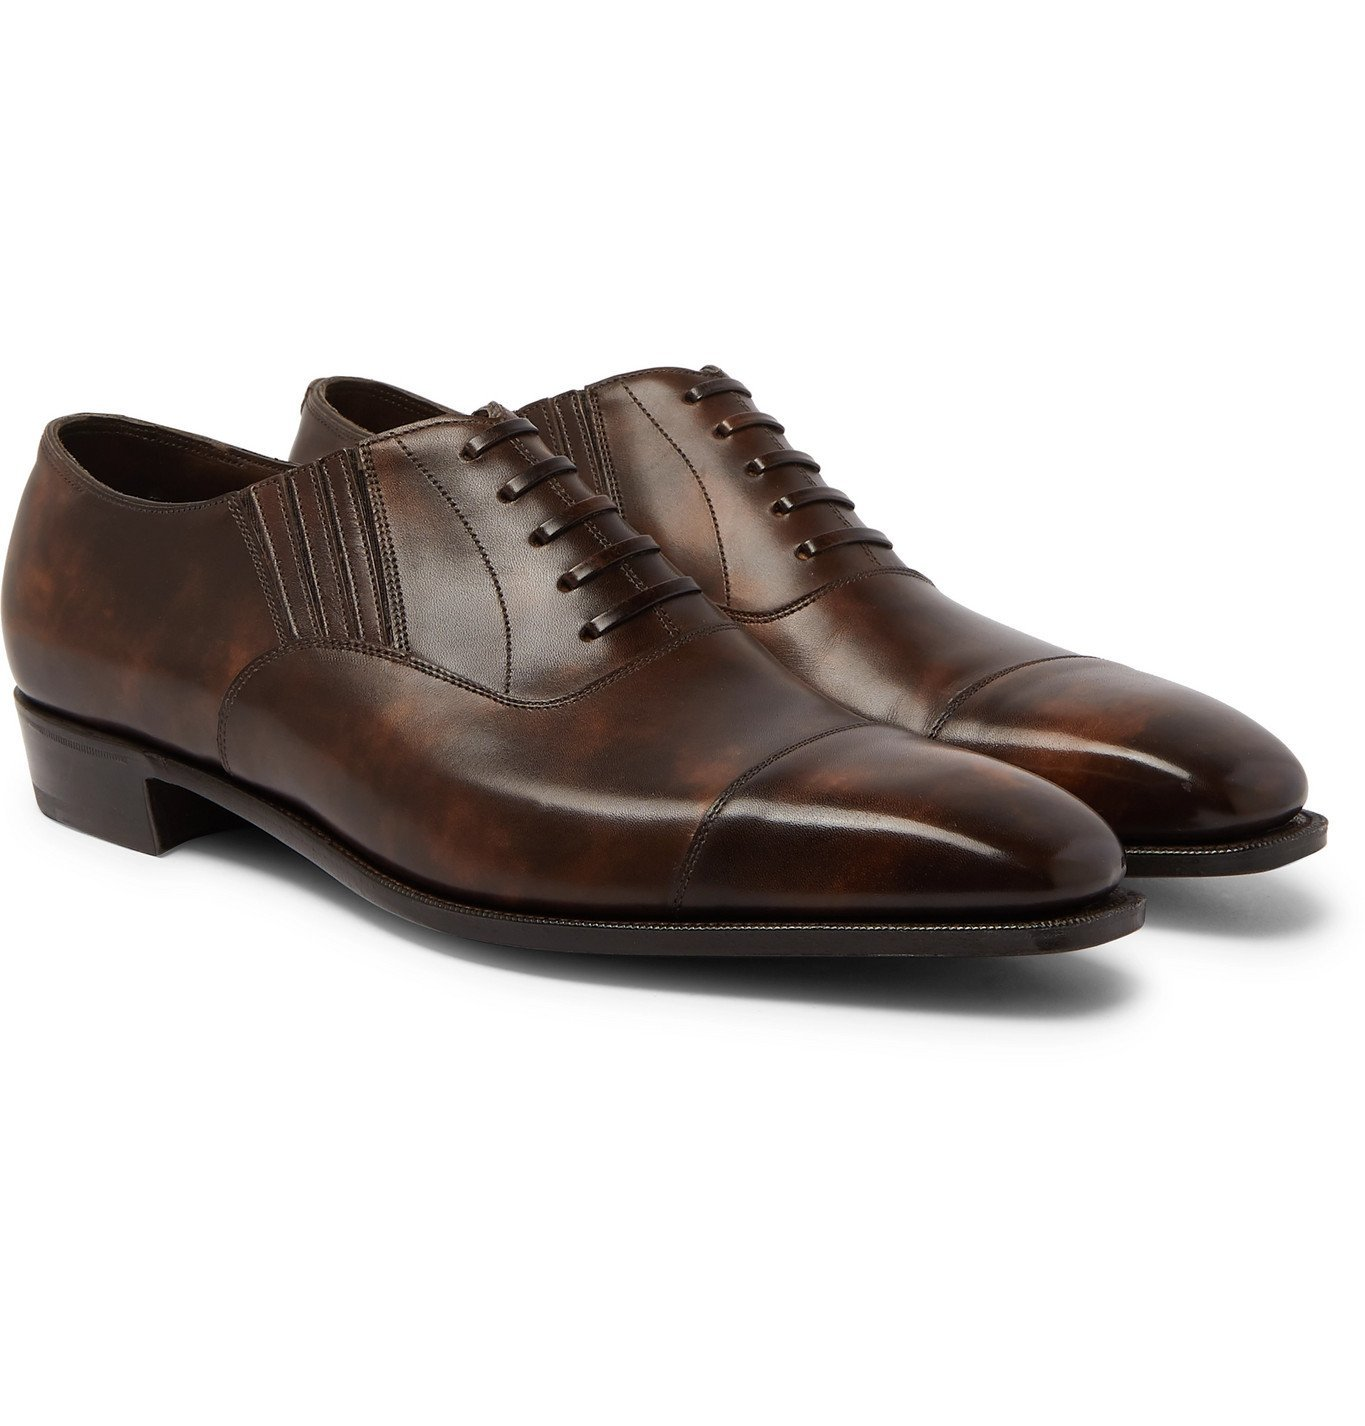 Photo: George Cleverley - Bodie II Bourbon Leather Oxford Shoes - Brown